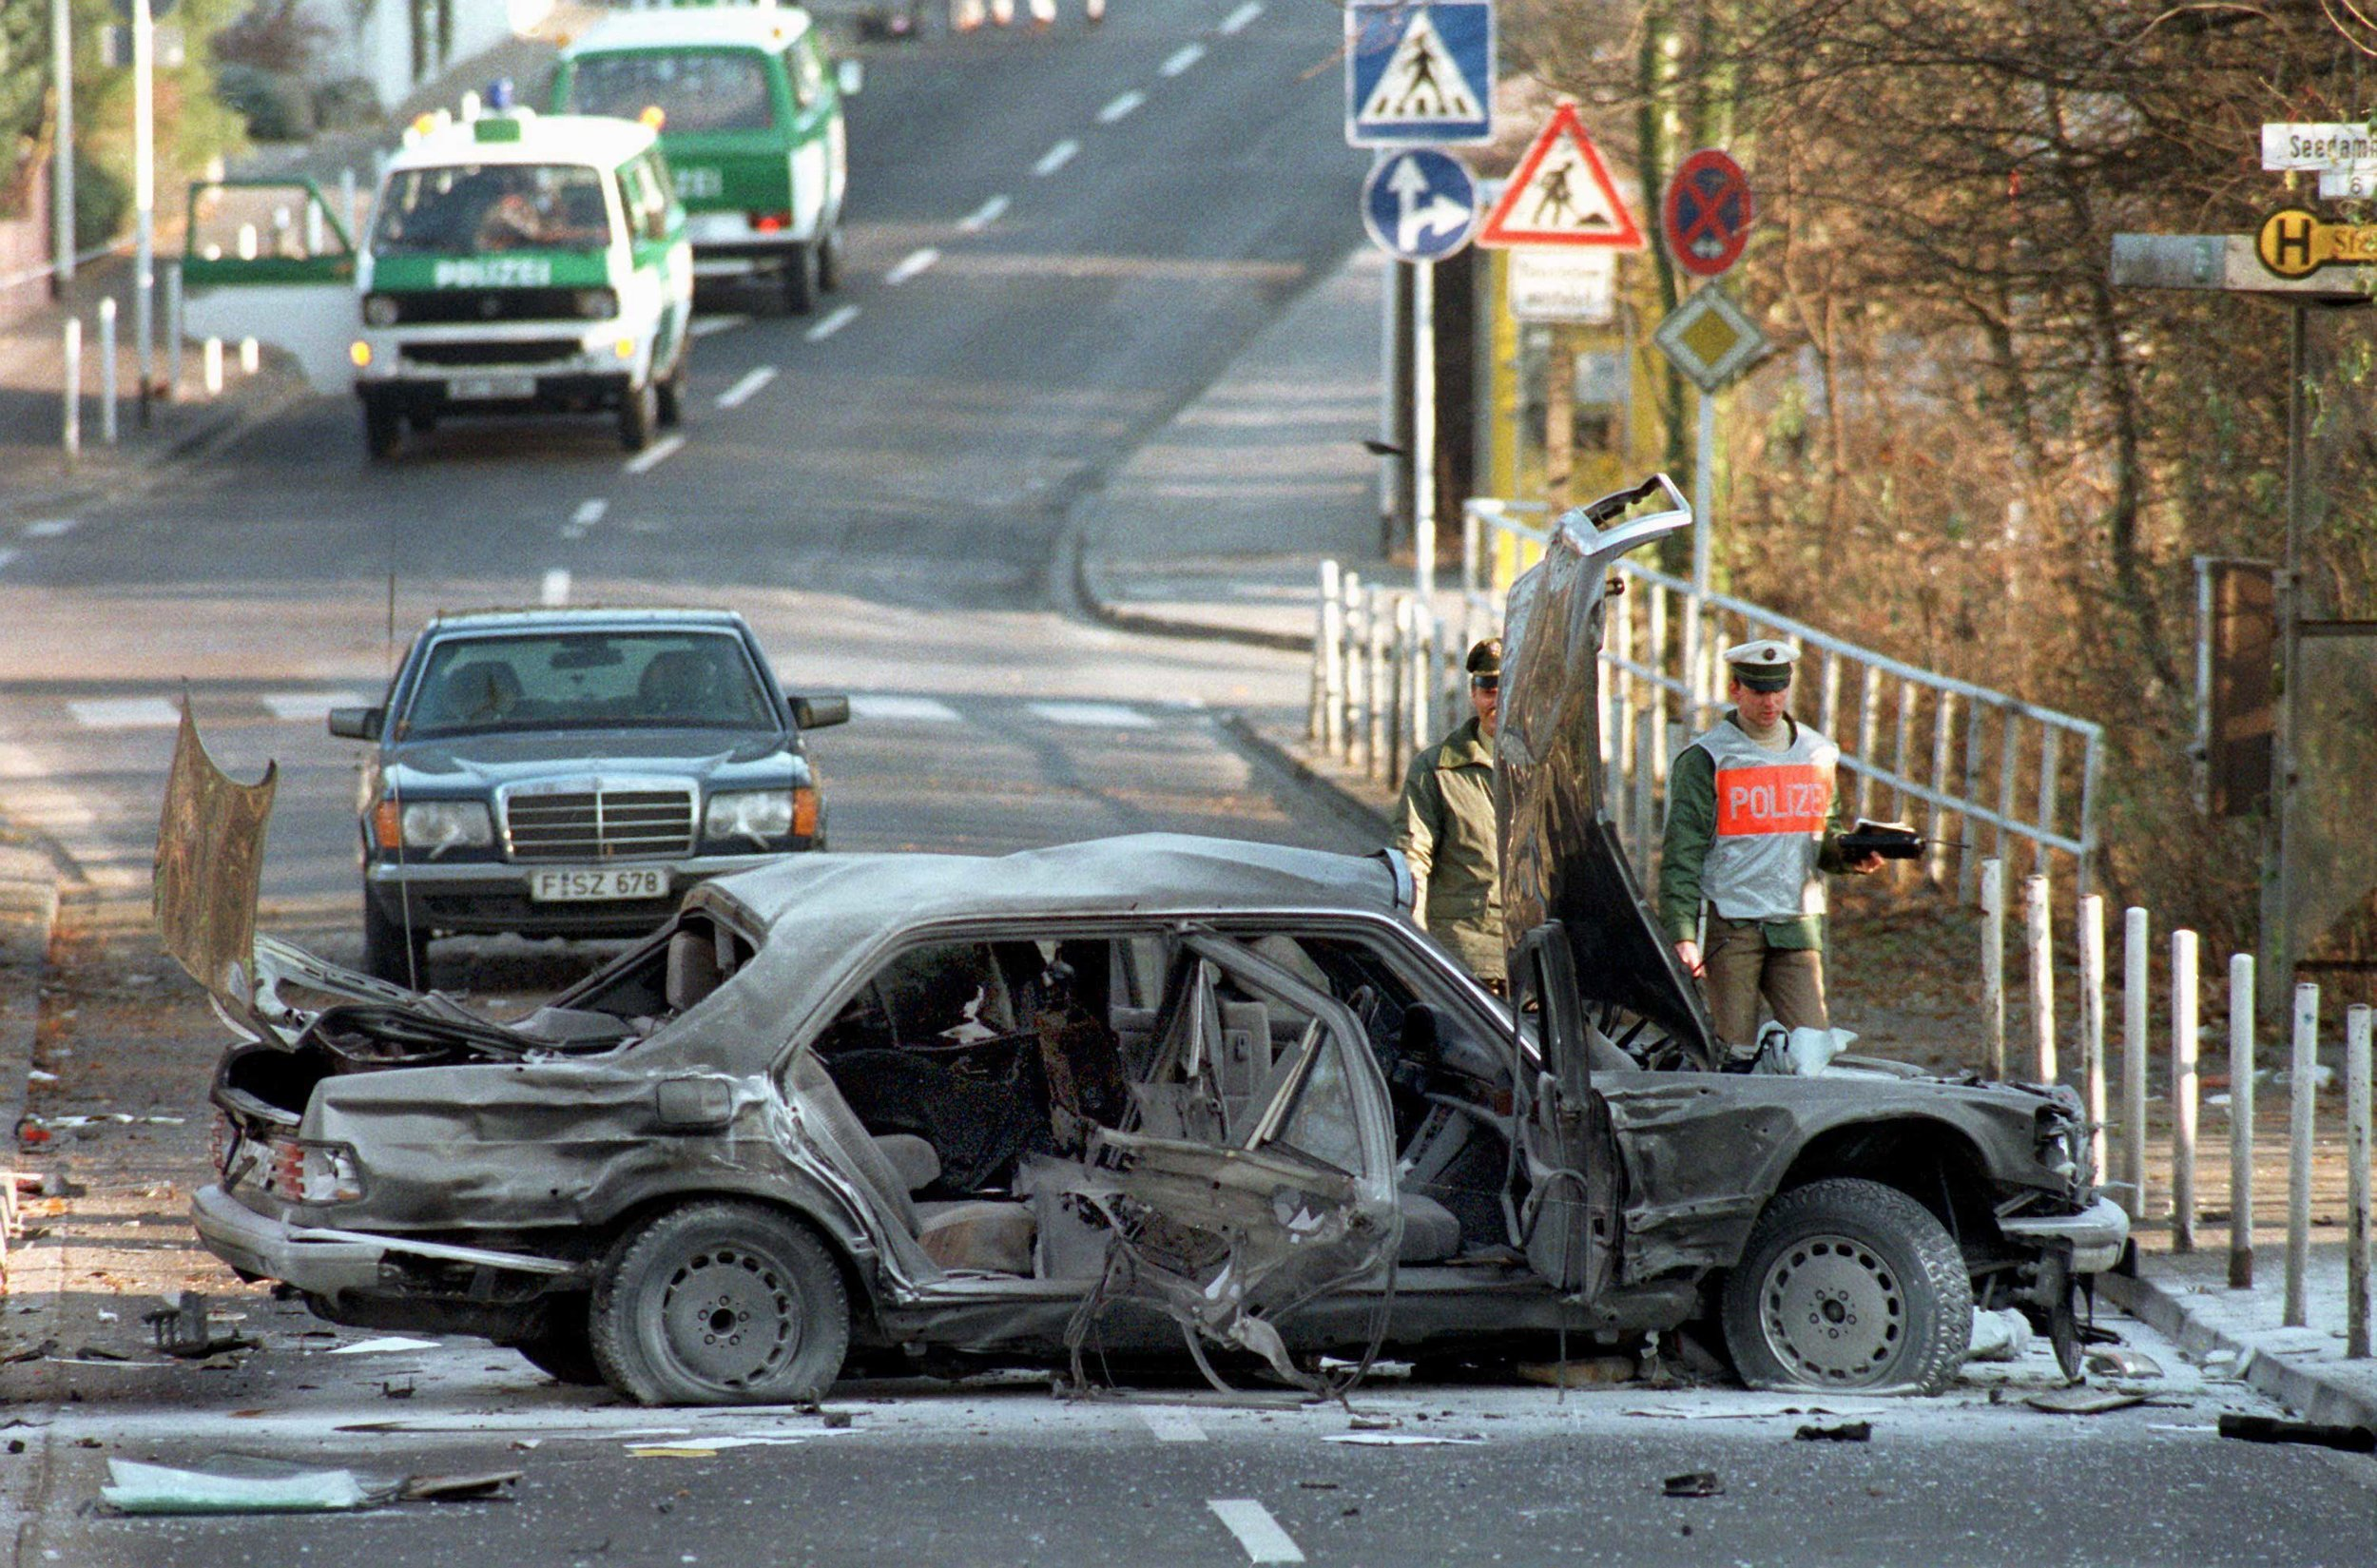 What was left of Herrhausen's armored vehicle after the 1989 attack. (AP Images)